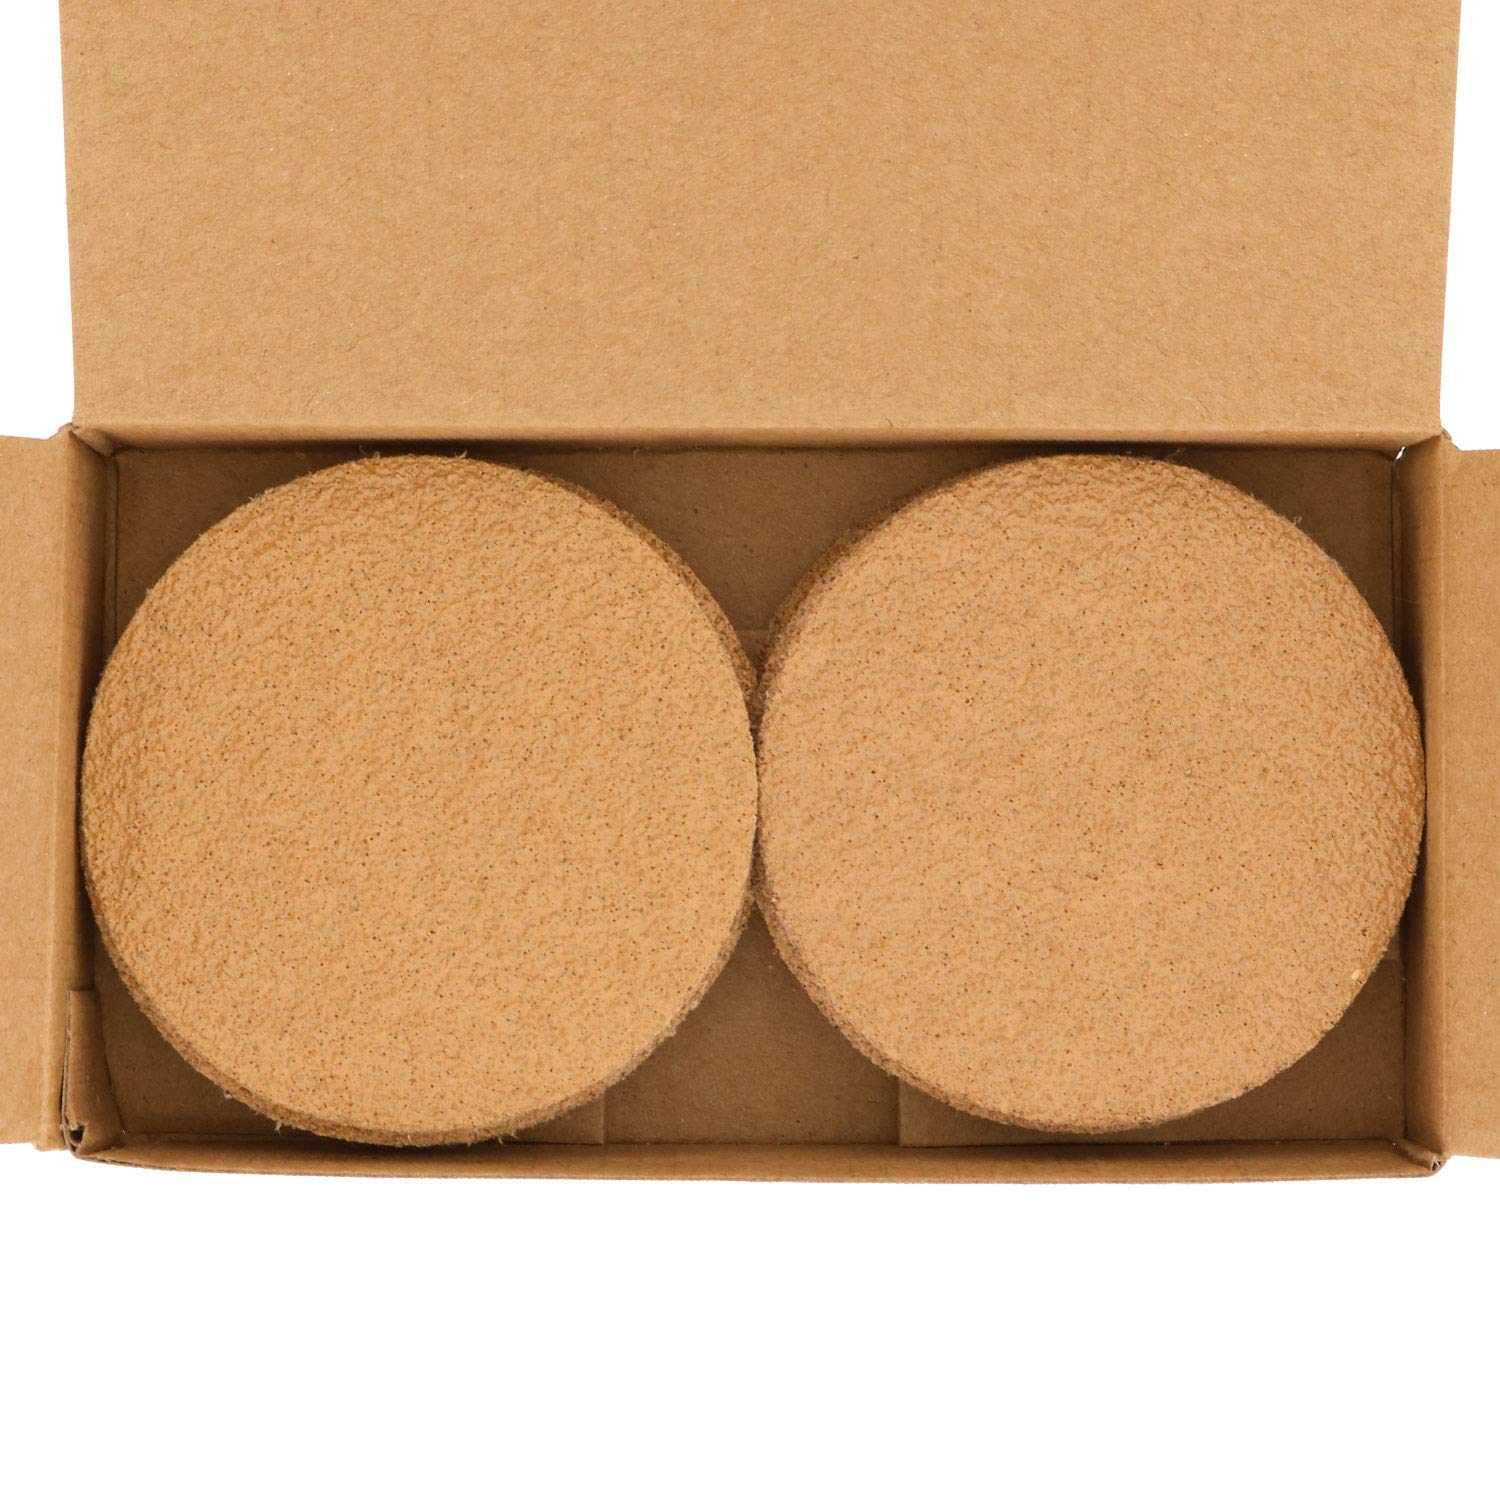 Dura-Gold 600 Grit 3 Gold Hook /& Loop Sanding Discs for DA Sanders Box of 40 Sandpaper Finishing Discs for Automotive and Woodworking Premium